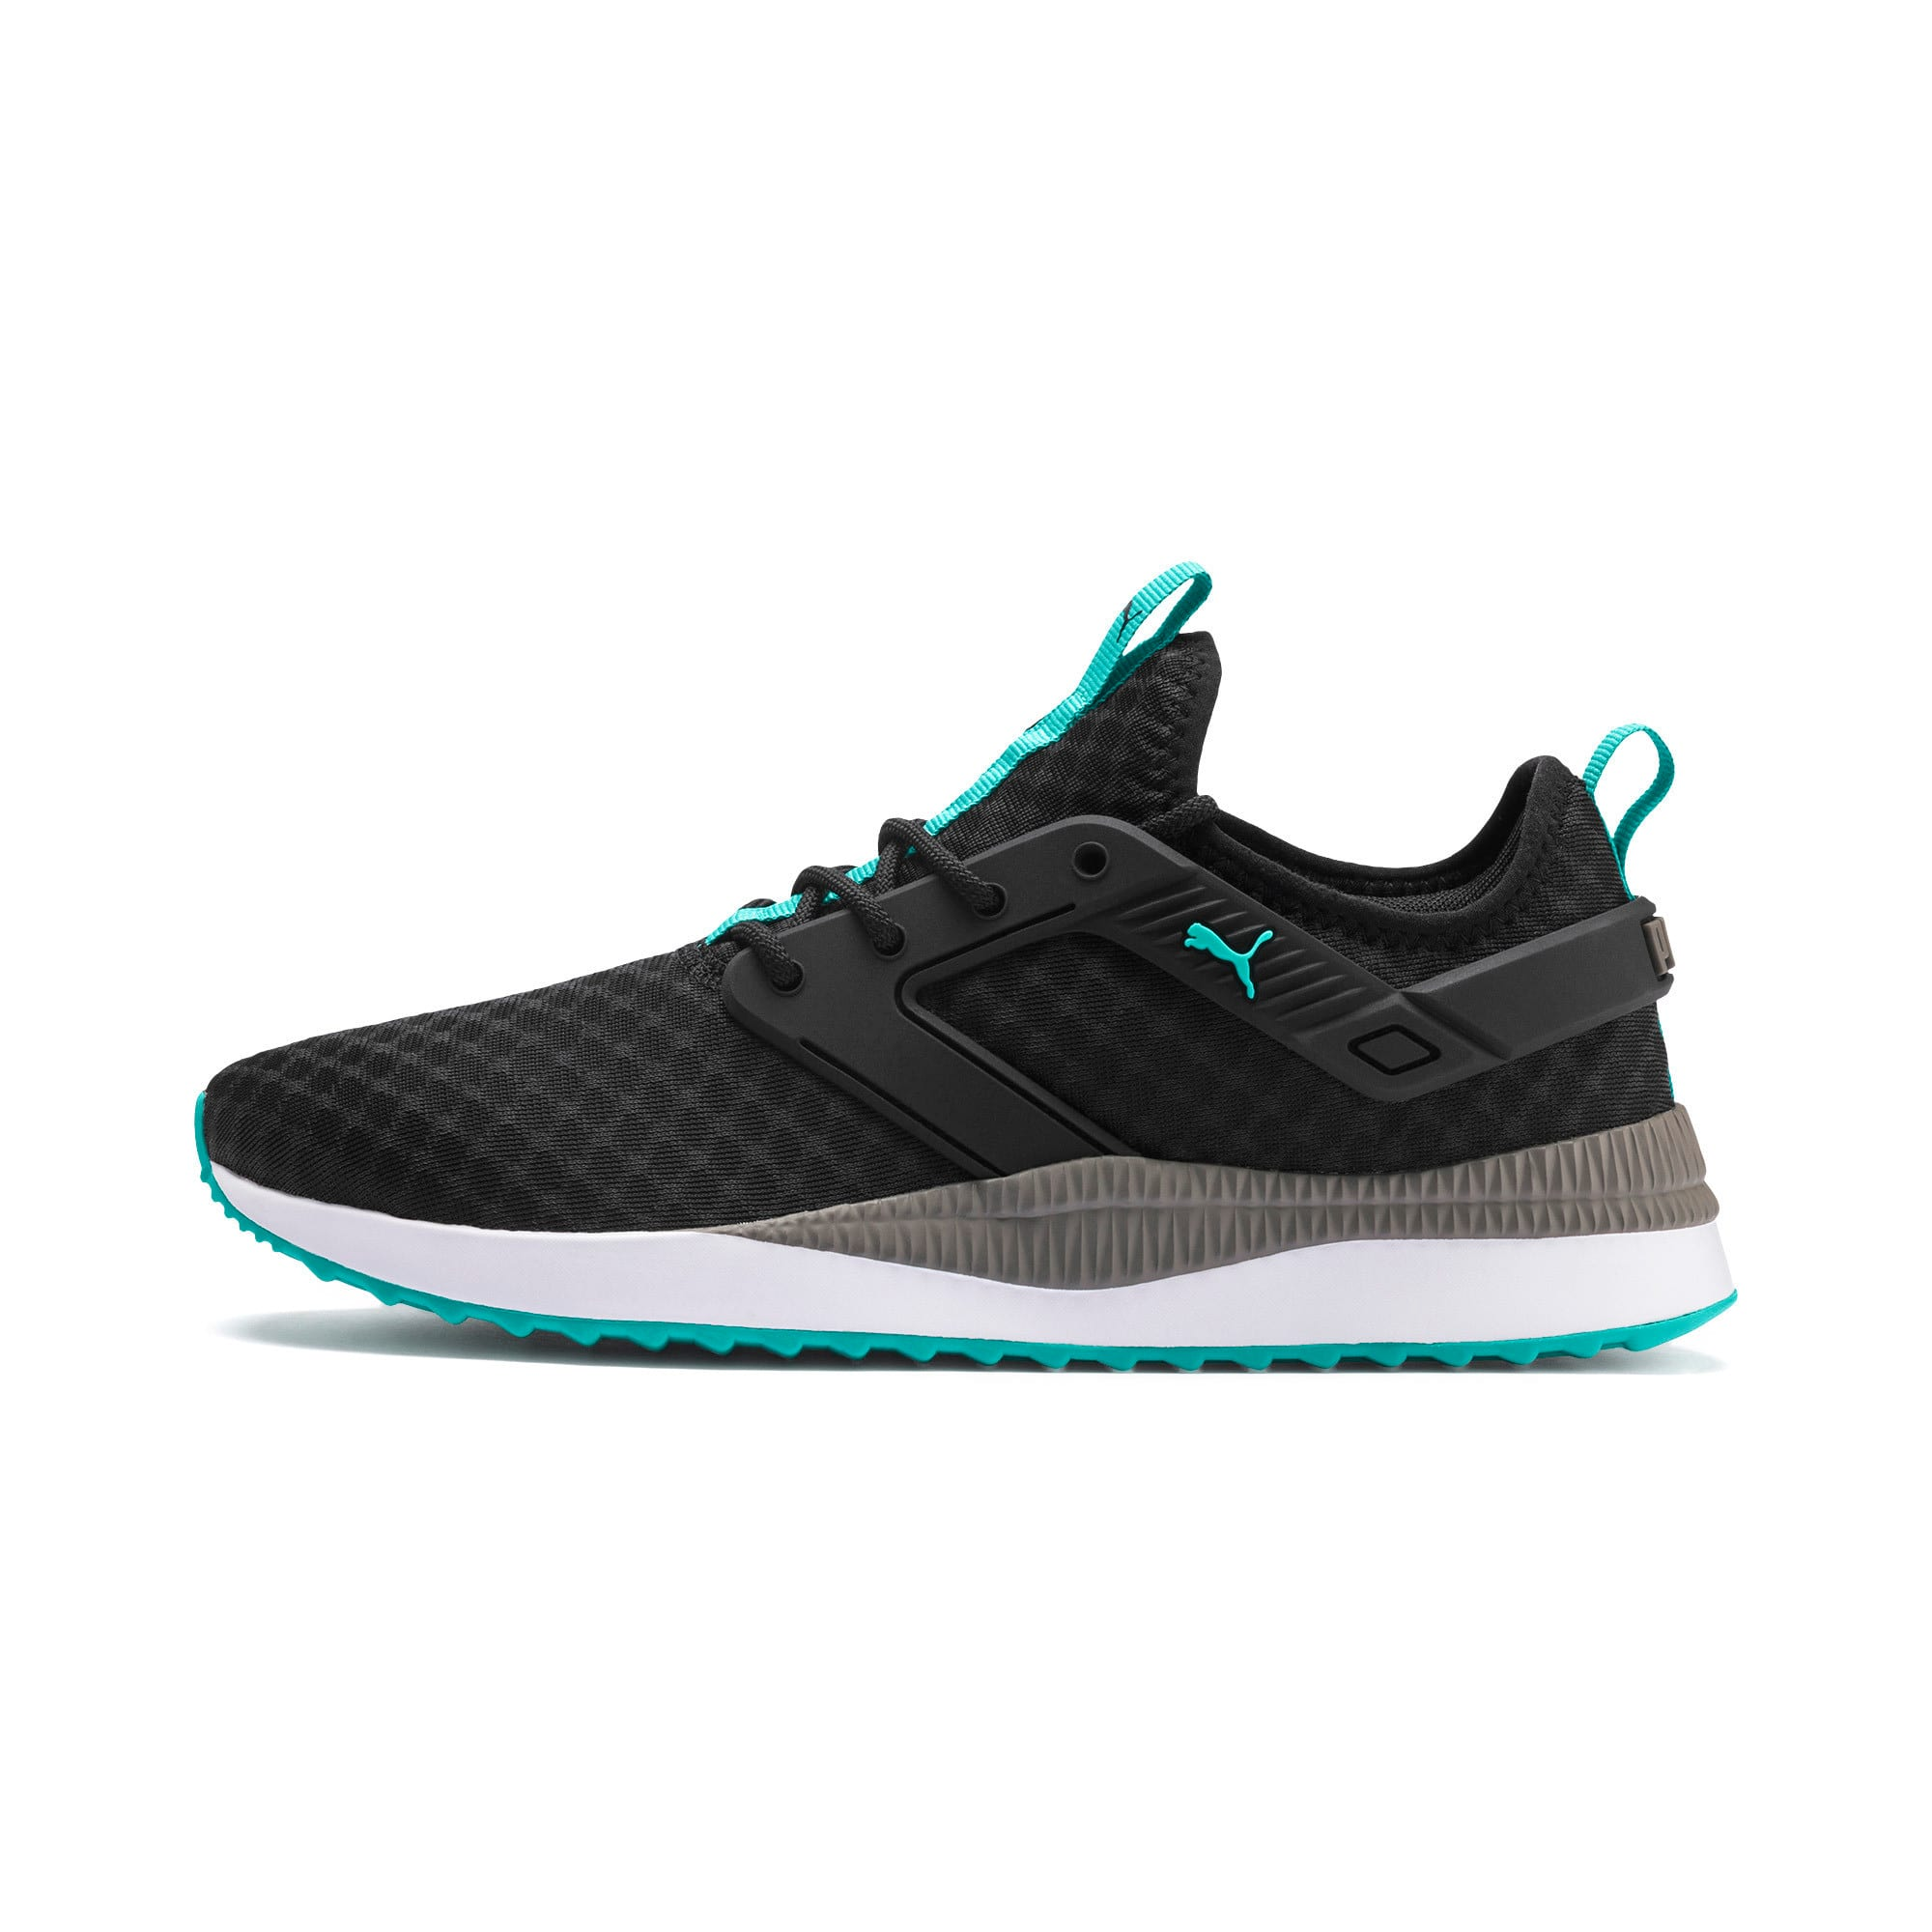 Thumbnail 1 of Pacer Next Excel Running Shoes, Puma Black-Blue Turquoise, medium